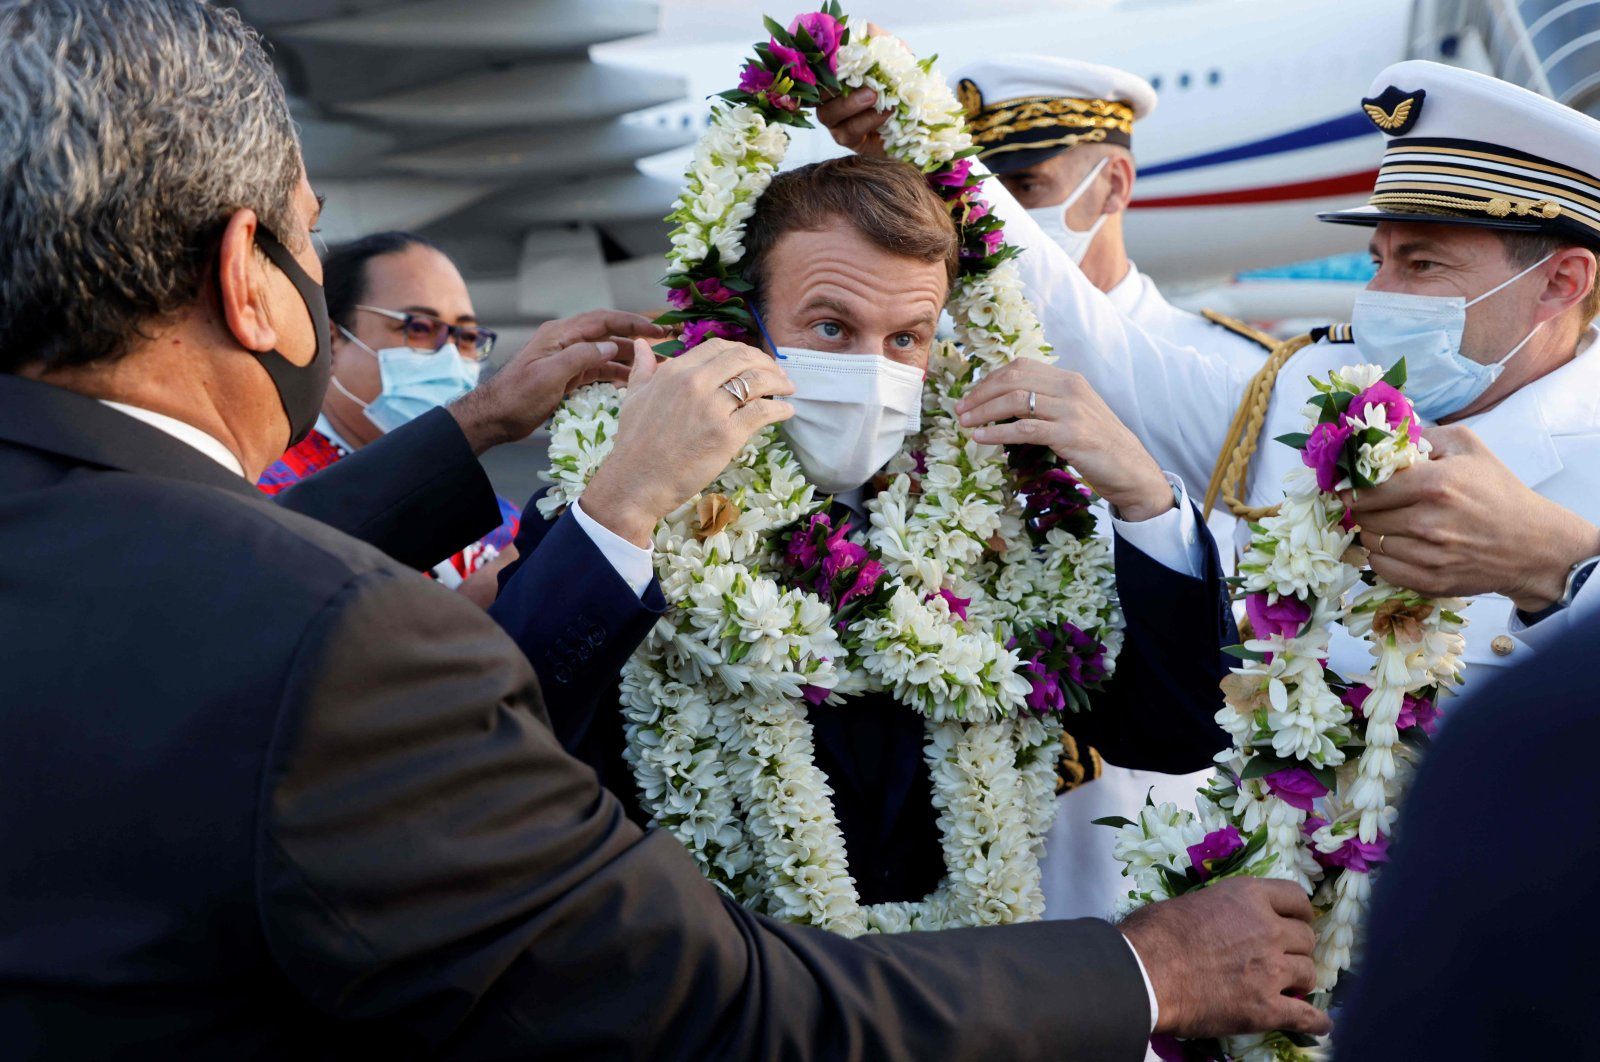 France's President Emmanuel Macron (C) is wrapped in garlands upon his arrival at Faa'a international airport for a visit to Tahiti in French Polynesia on July 24, 2021. (AFP Photo)